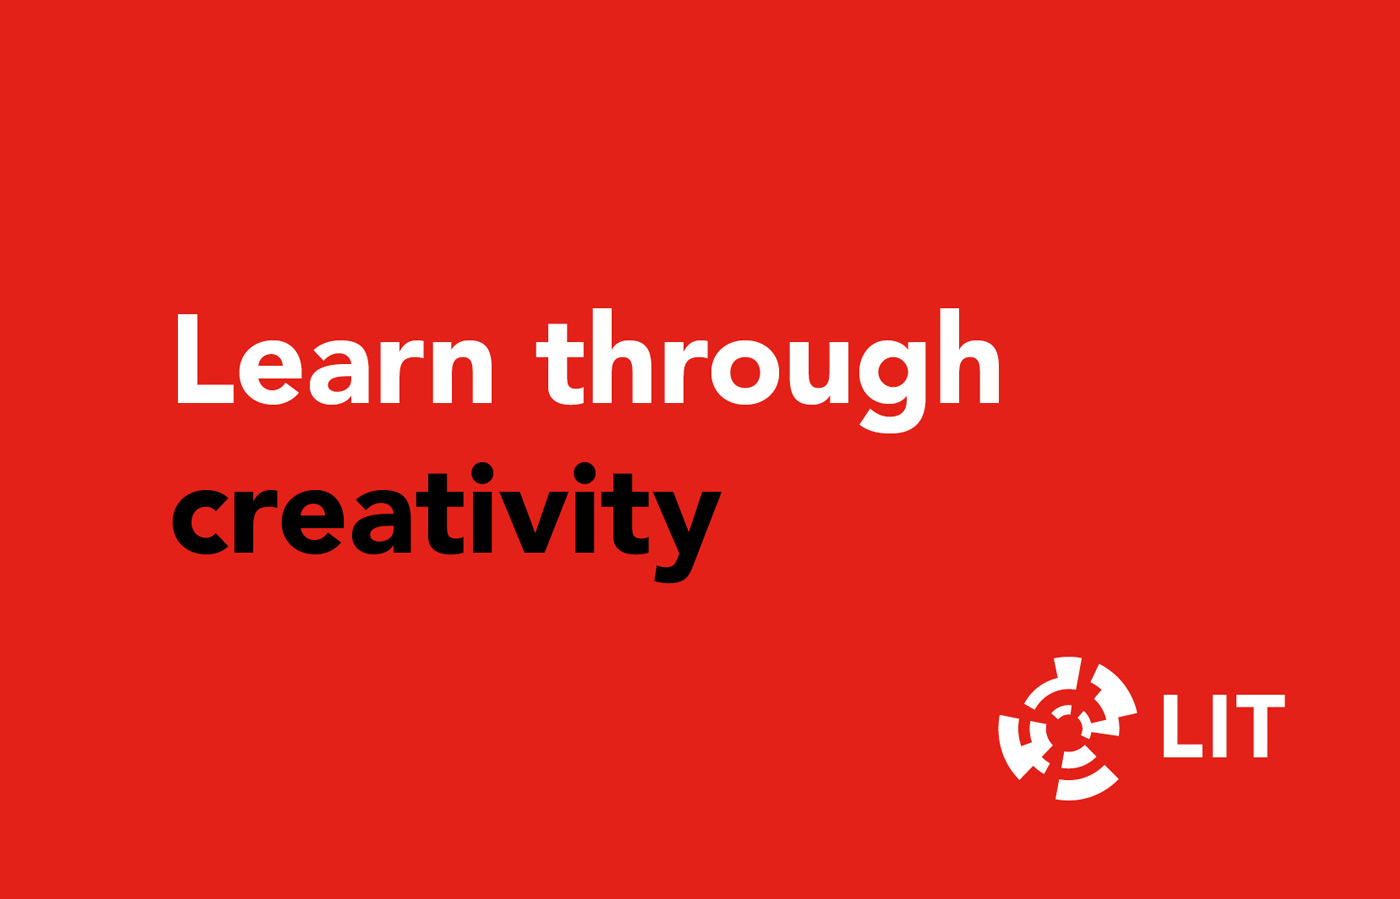 LIT graphic design. 'Learn through creativity.' White and black font on red background with LIT logo